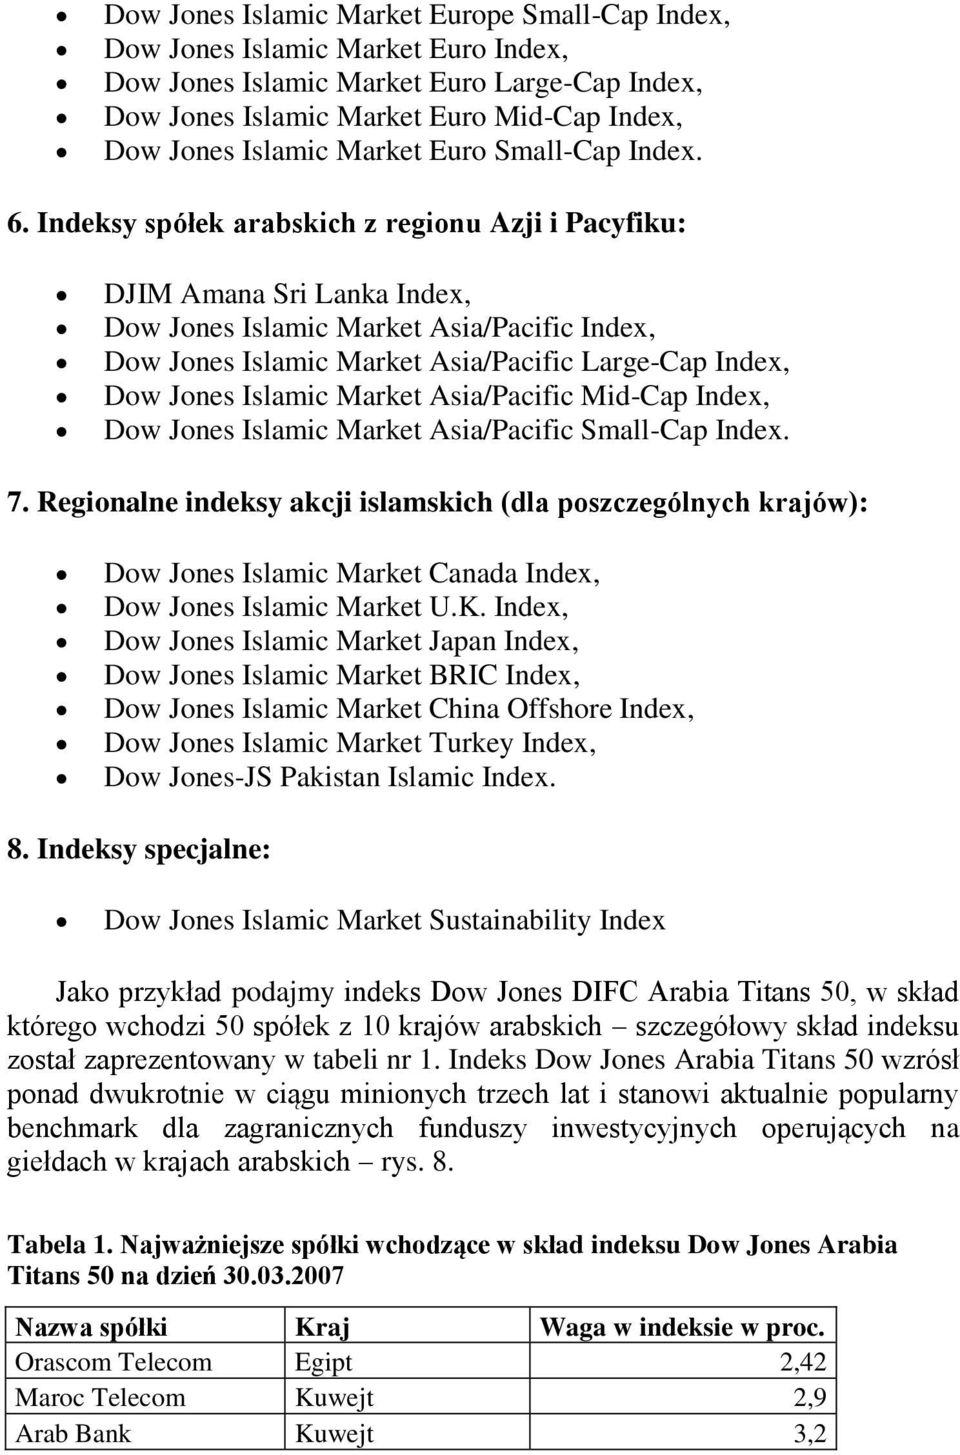 Indeksy spółek arabskich z regionu Azji i Pacyfiku: DJIM Amana Sri Lanka Index, Dow Jones Islamic Market Asia/Pacific Index, Dow Jones Islamic Market Asia/Pacific Large-Cap Index, Dow Jones Islamic